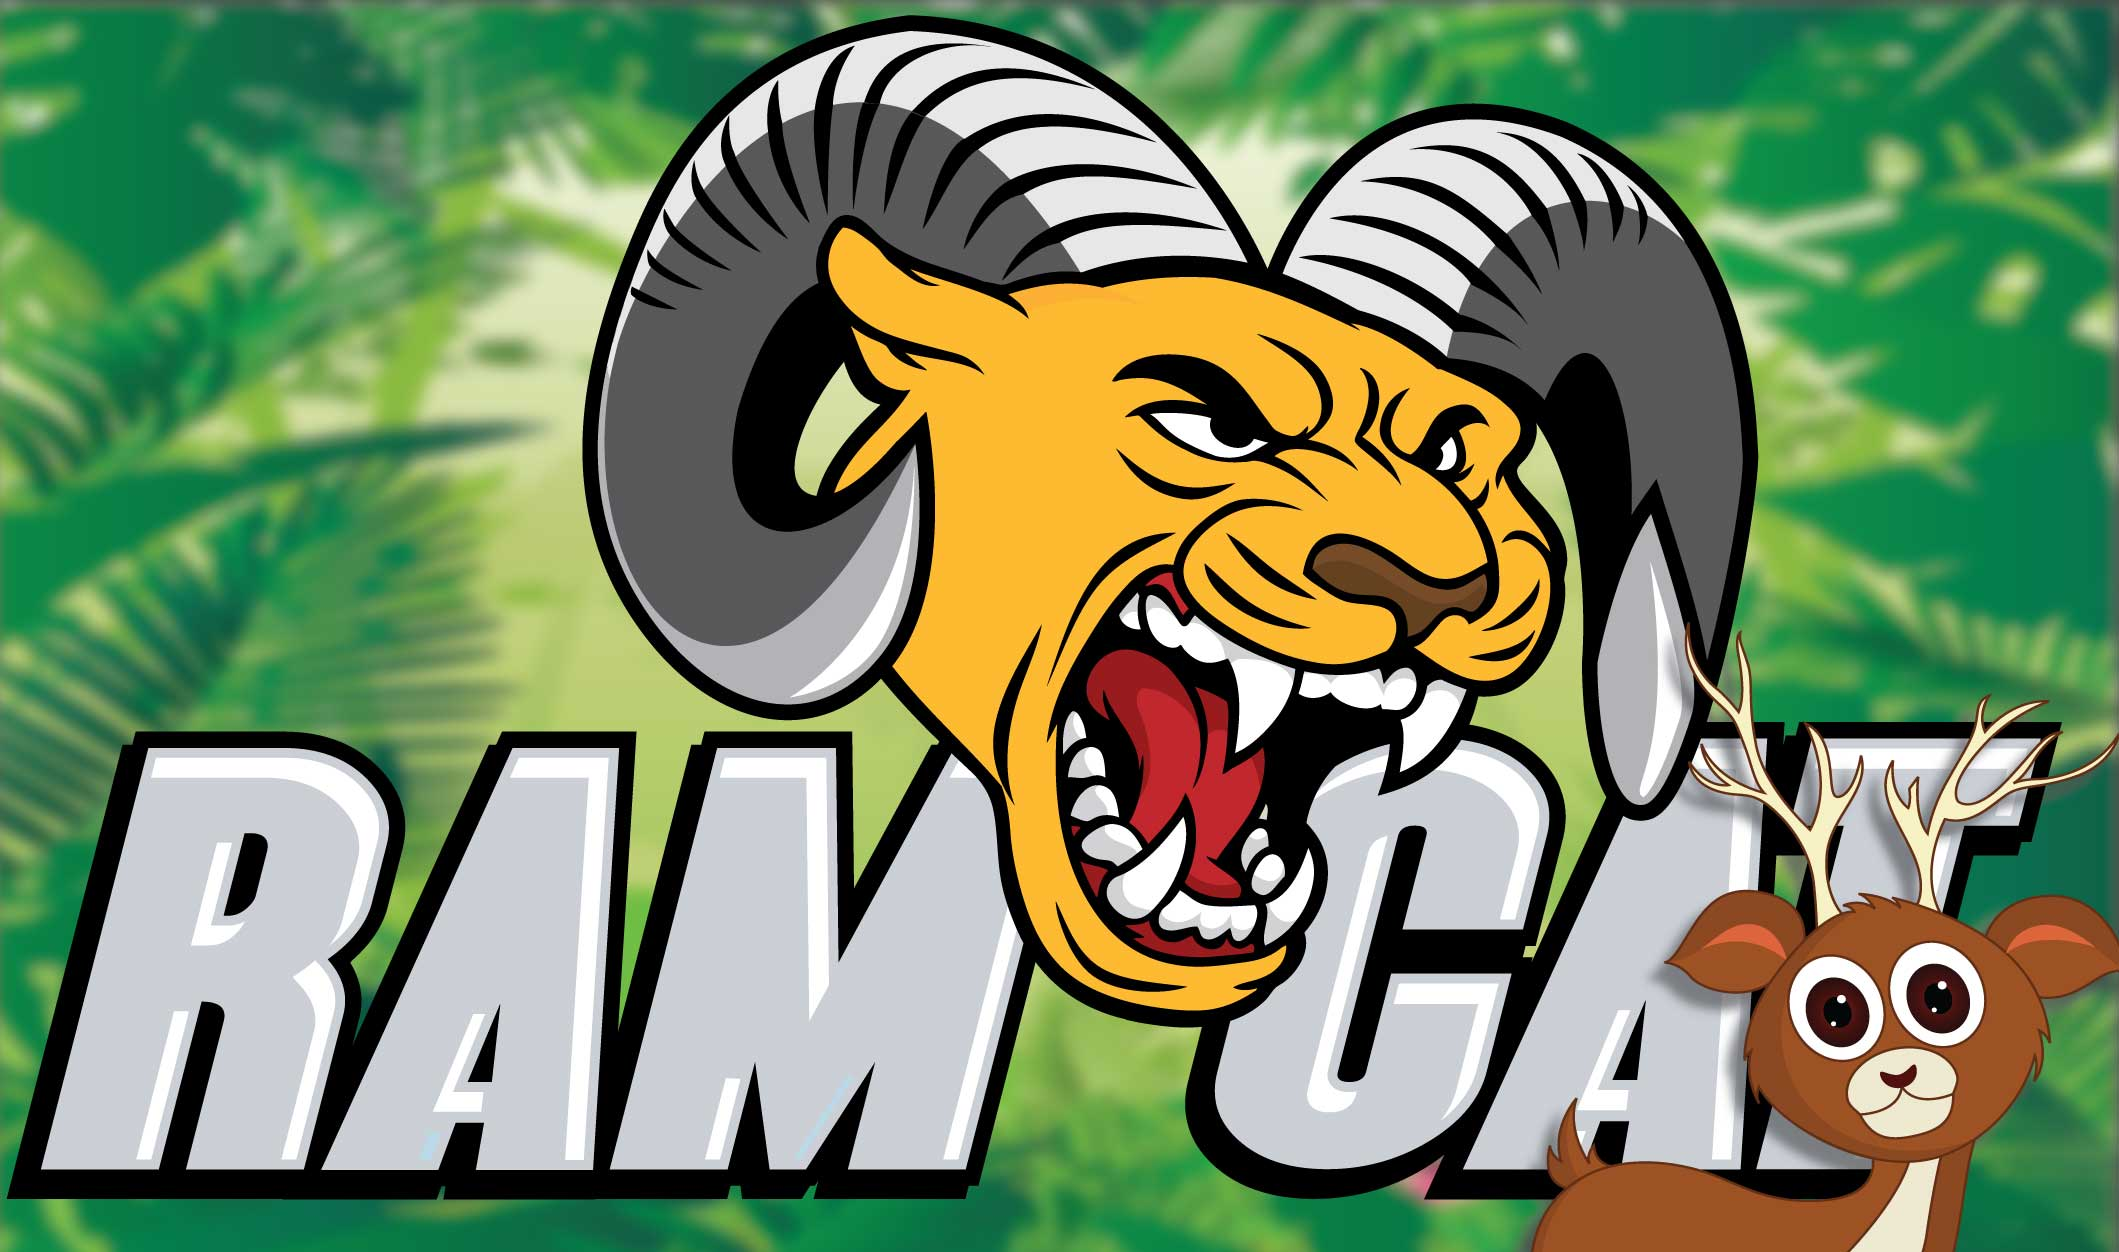 RamCat-logo-final-137.ai-vector-file1.jpg